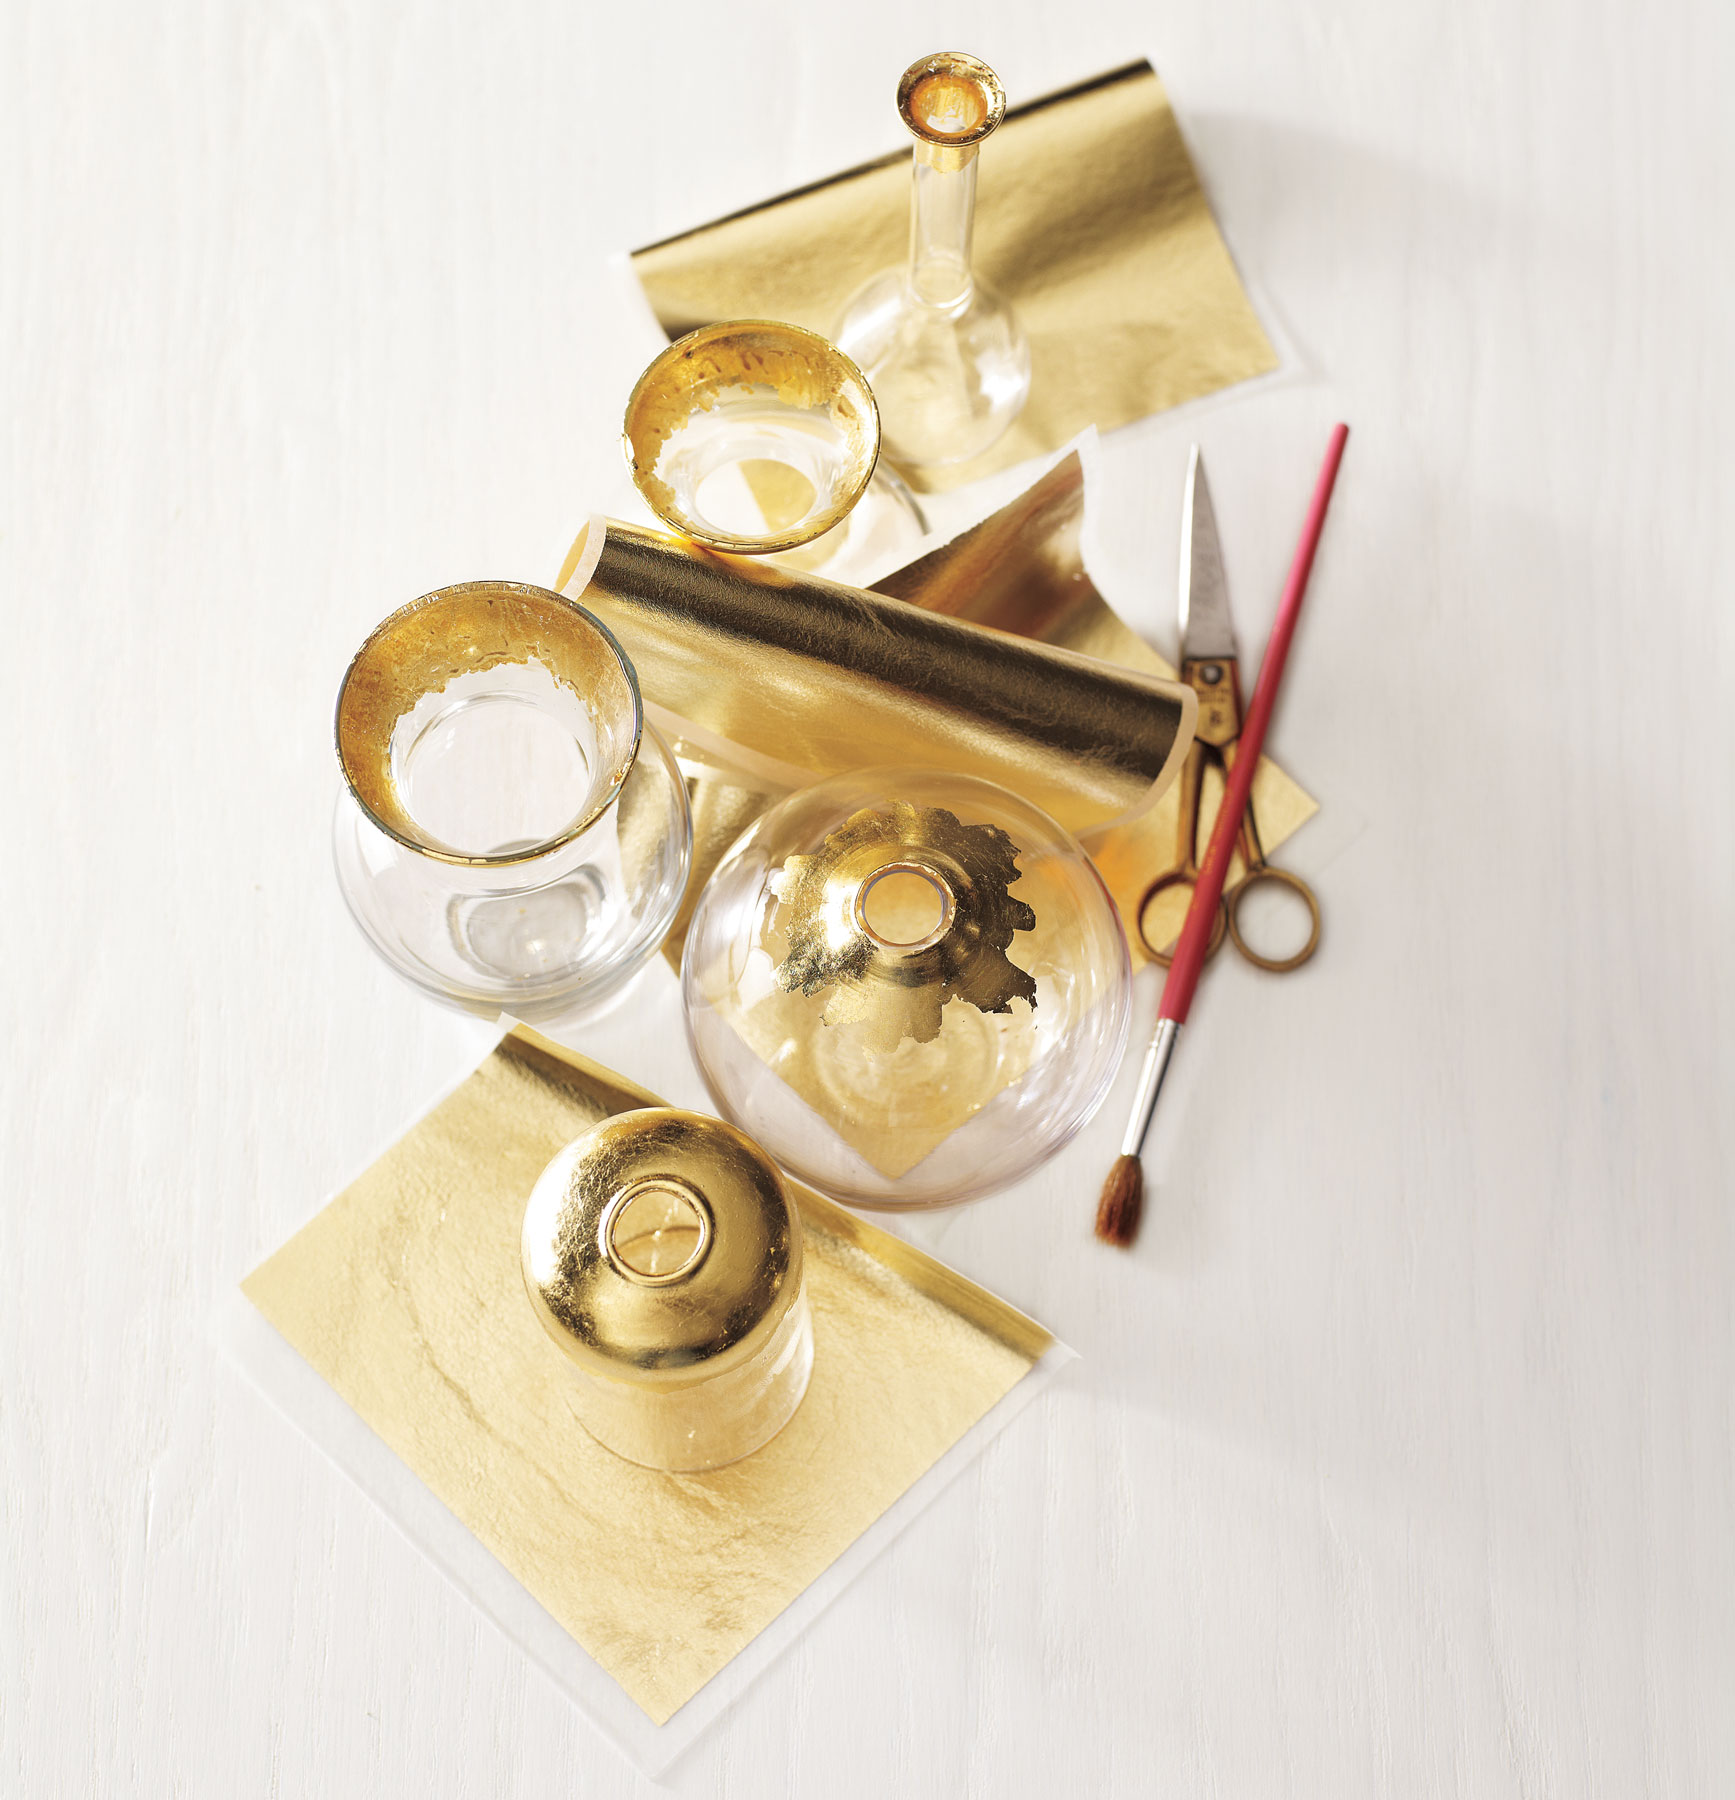 DIY Christmas gifts, homemade holiday present ideas - Gold-Leaf Bud-Vase Trio